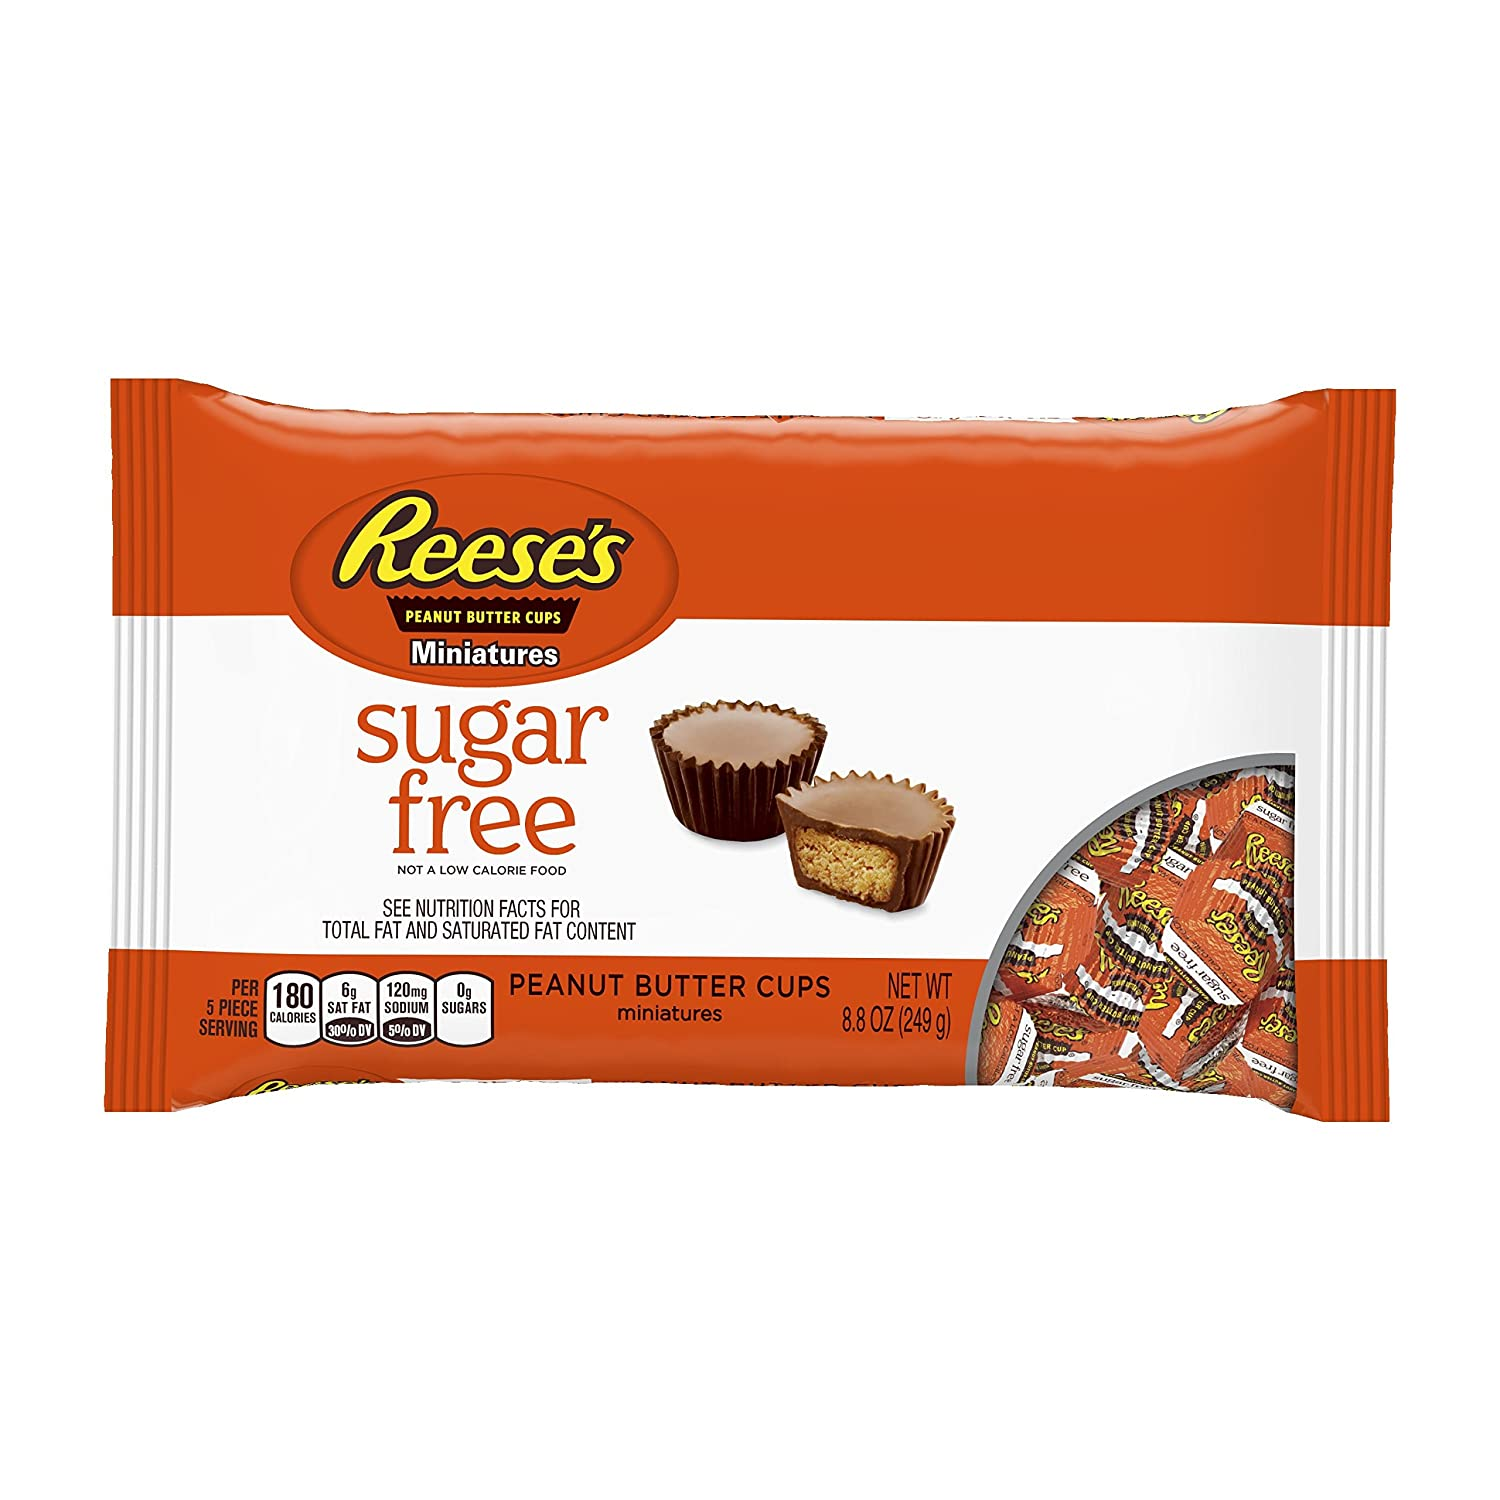 REESE'S Peanut Butter Cup Miniatures, Sugar-Free/Gluten Free